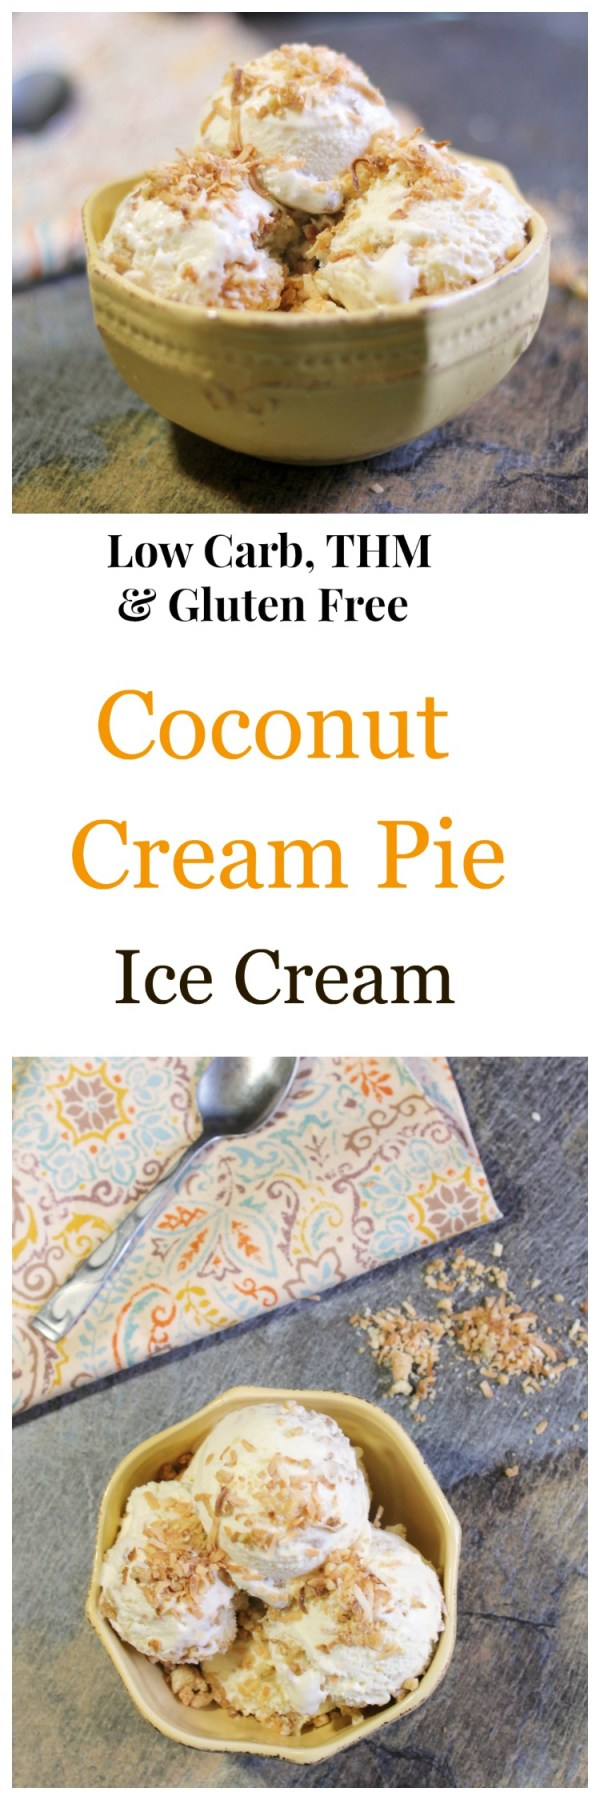 Coconut Cream Pie Ice Cream is low carb, will with toasted coconut and pieces pie crust. Gluten free and THM.